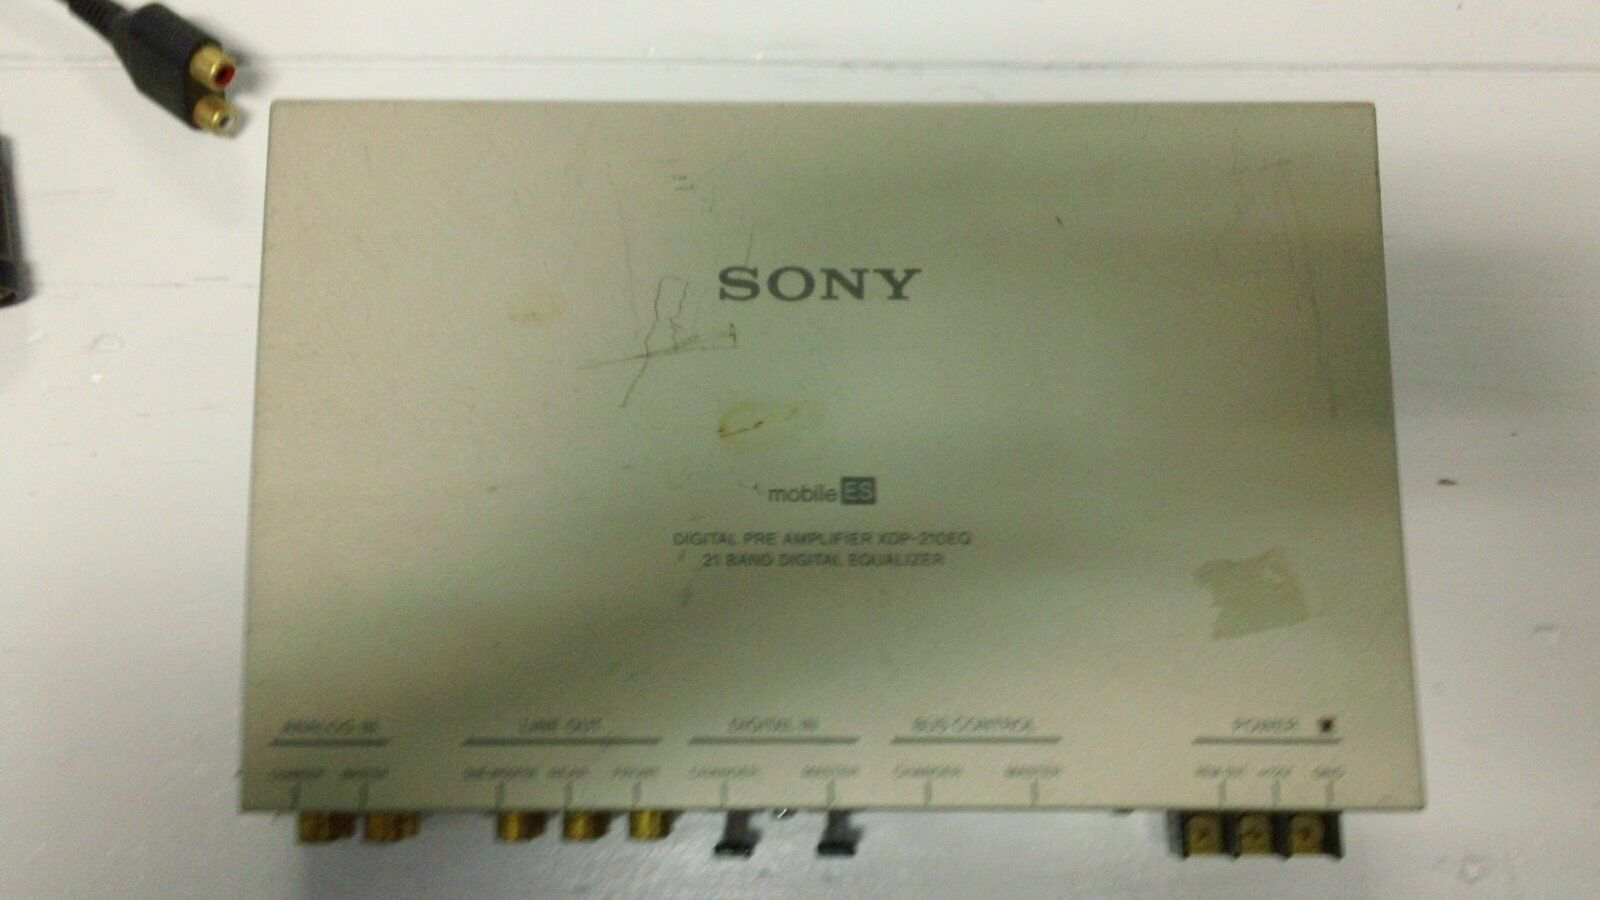 Sony Mobile Es Digital Preamplifier Xdp 210eq 21 Band Eq 2 1 Of 3free Shipping